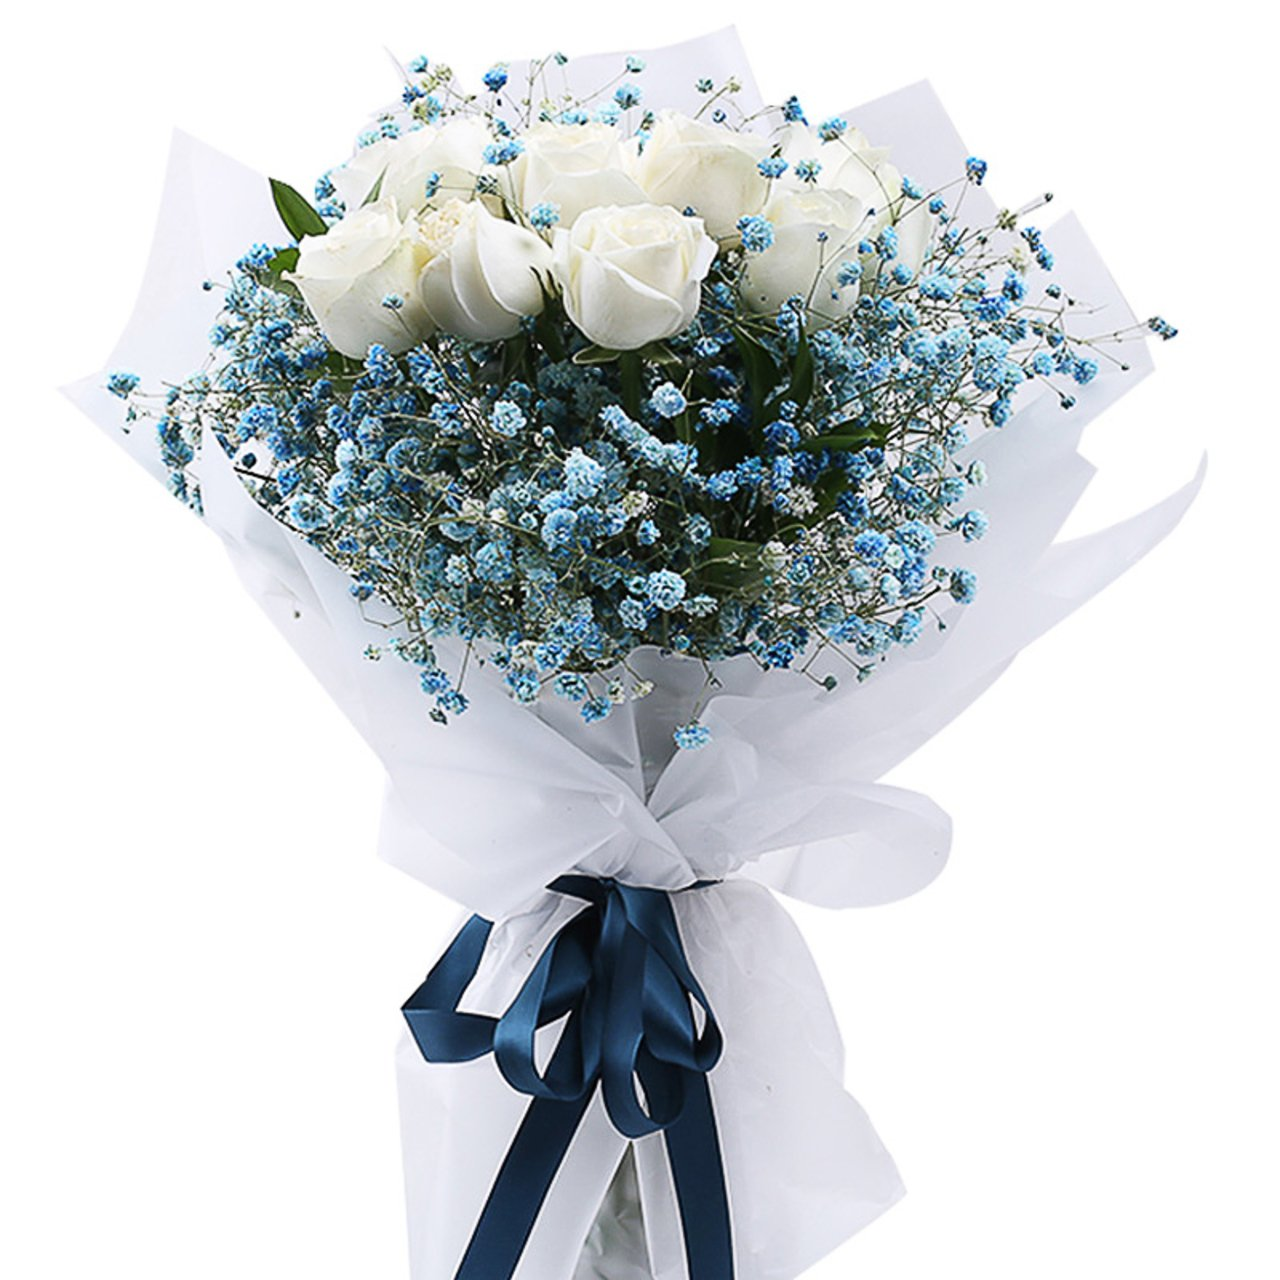 Special you(11 white roses)